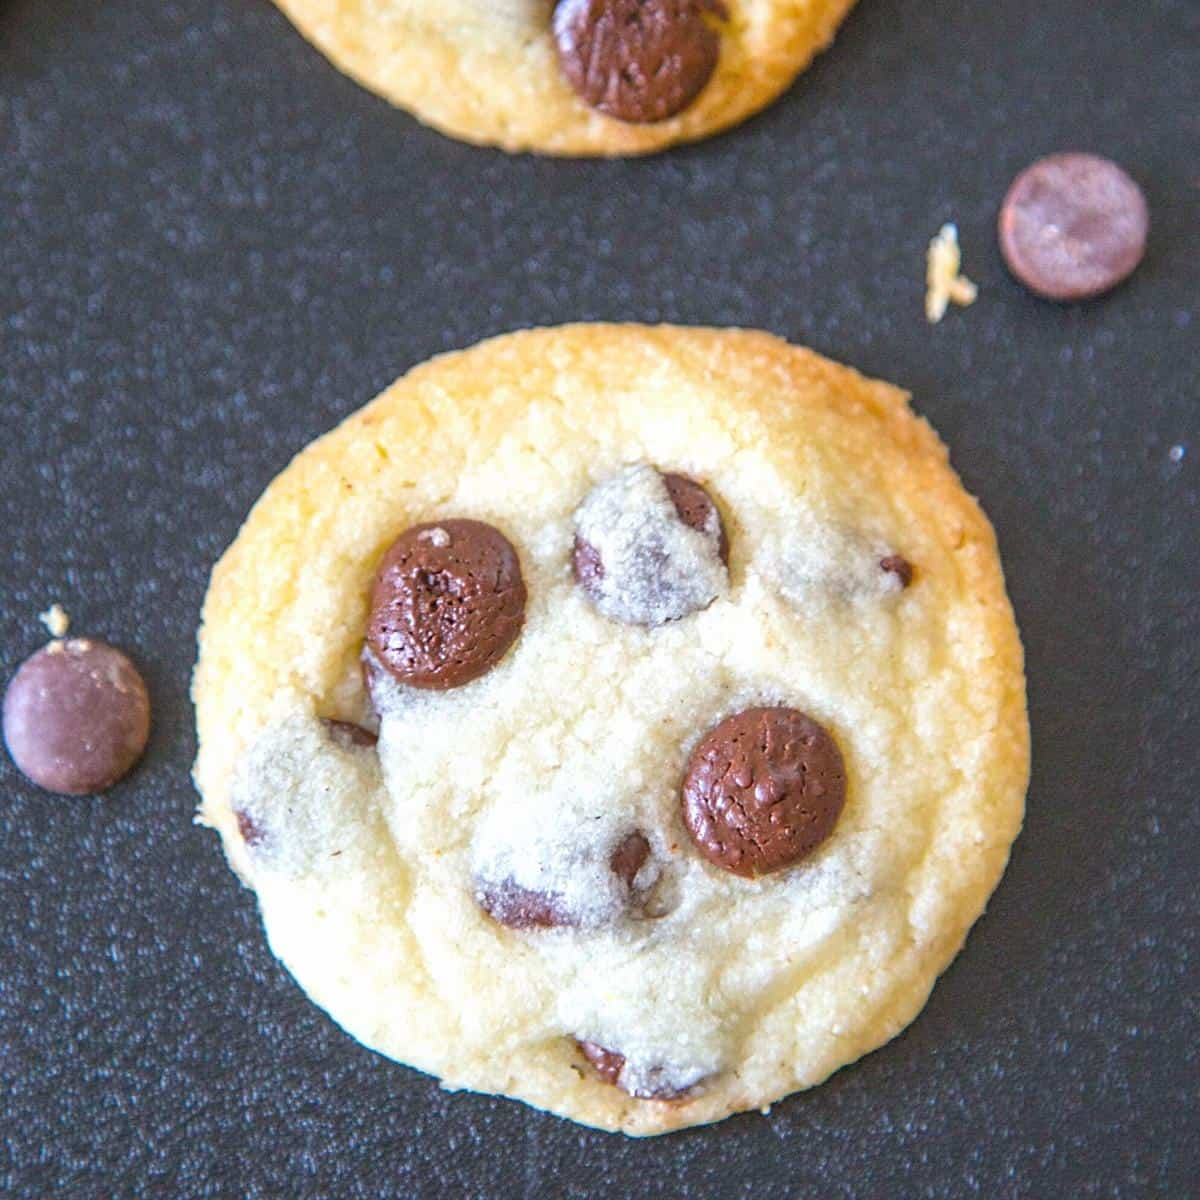 Eggless cookies on a black background.